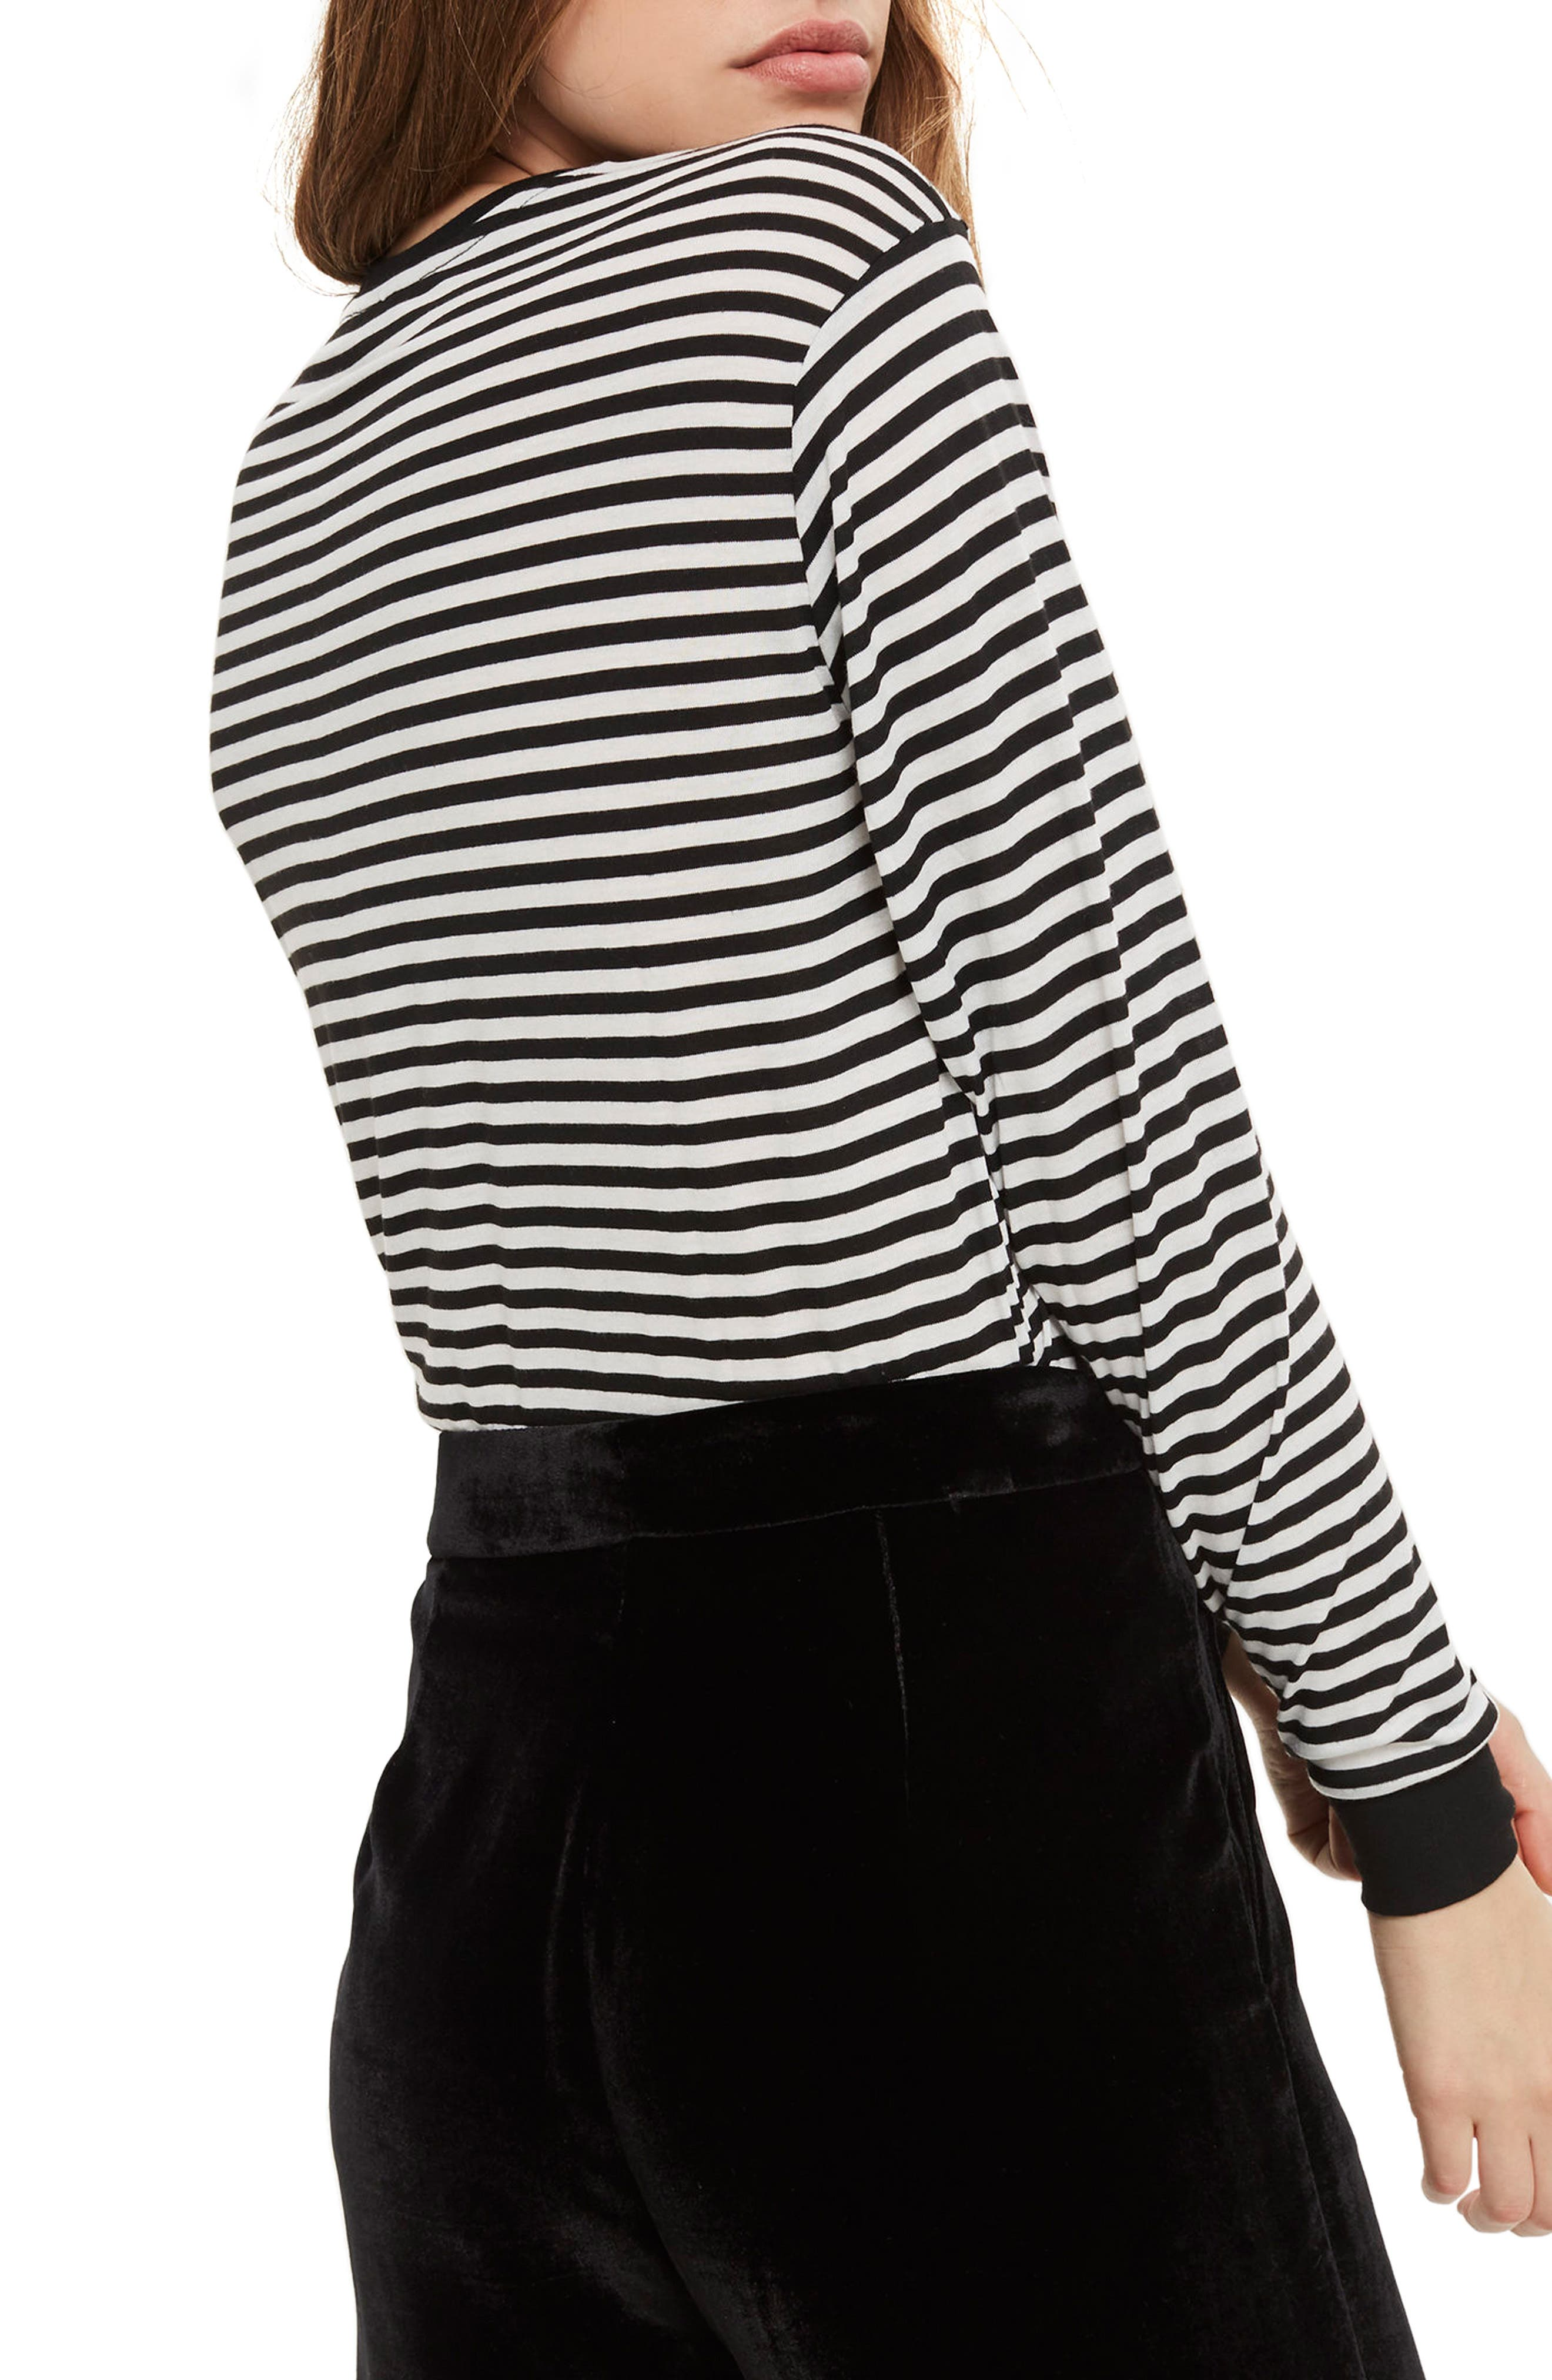 Ciao Embroidered Stripe Shirt,                             Alternate thumbnail 2, color,                             002